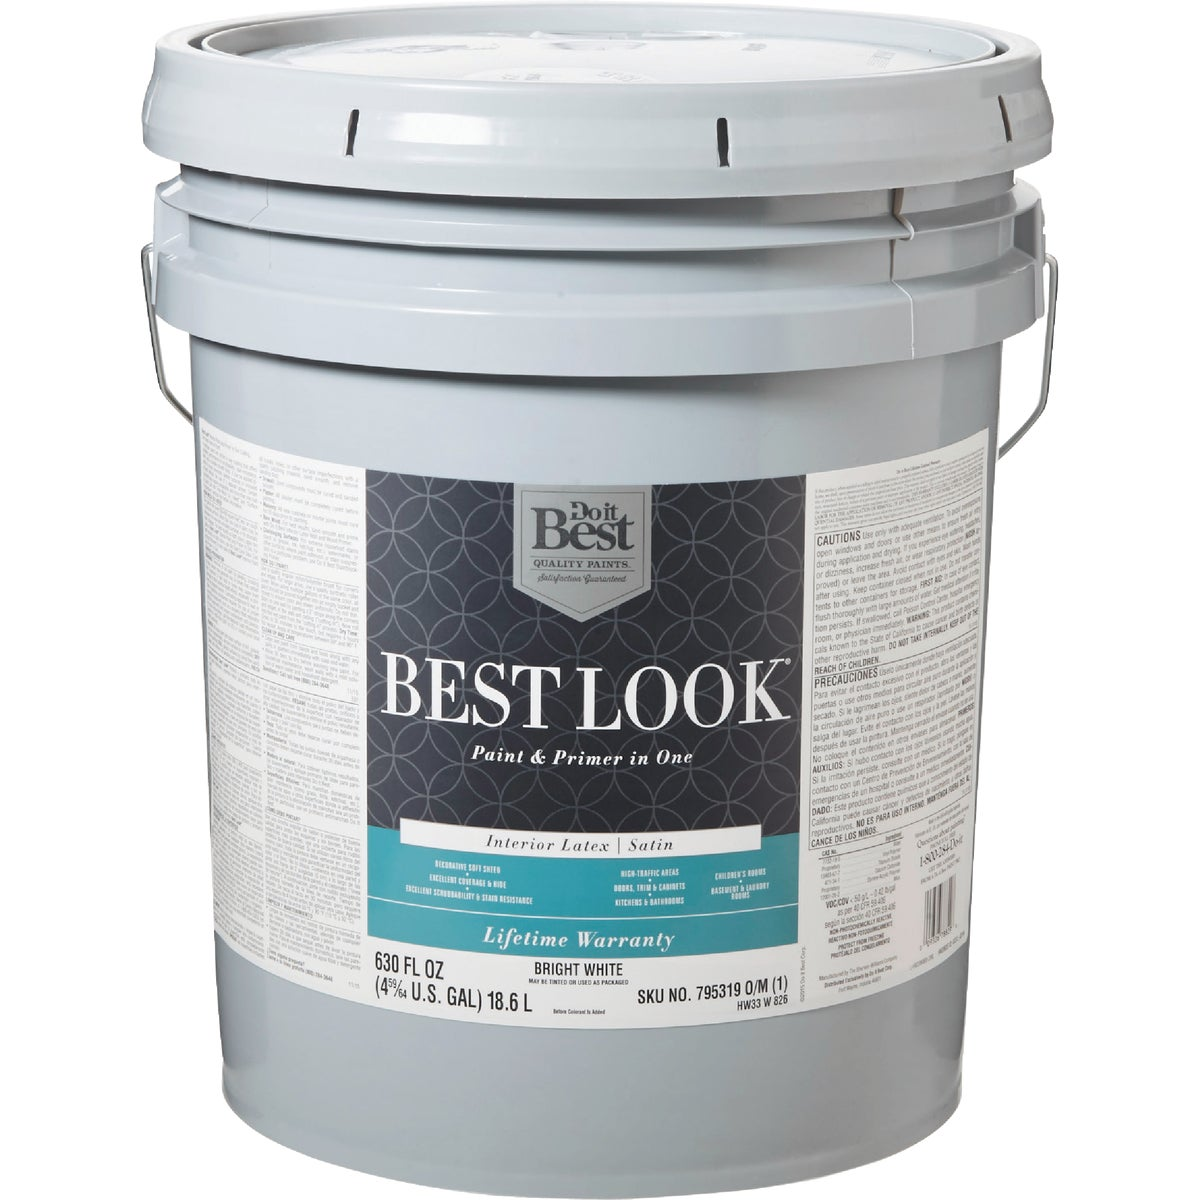 INT SAT BRIGHT WHT PAINT - HW33W0826-20 by Do it Best